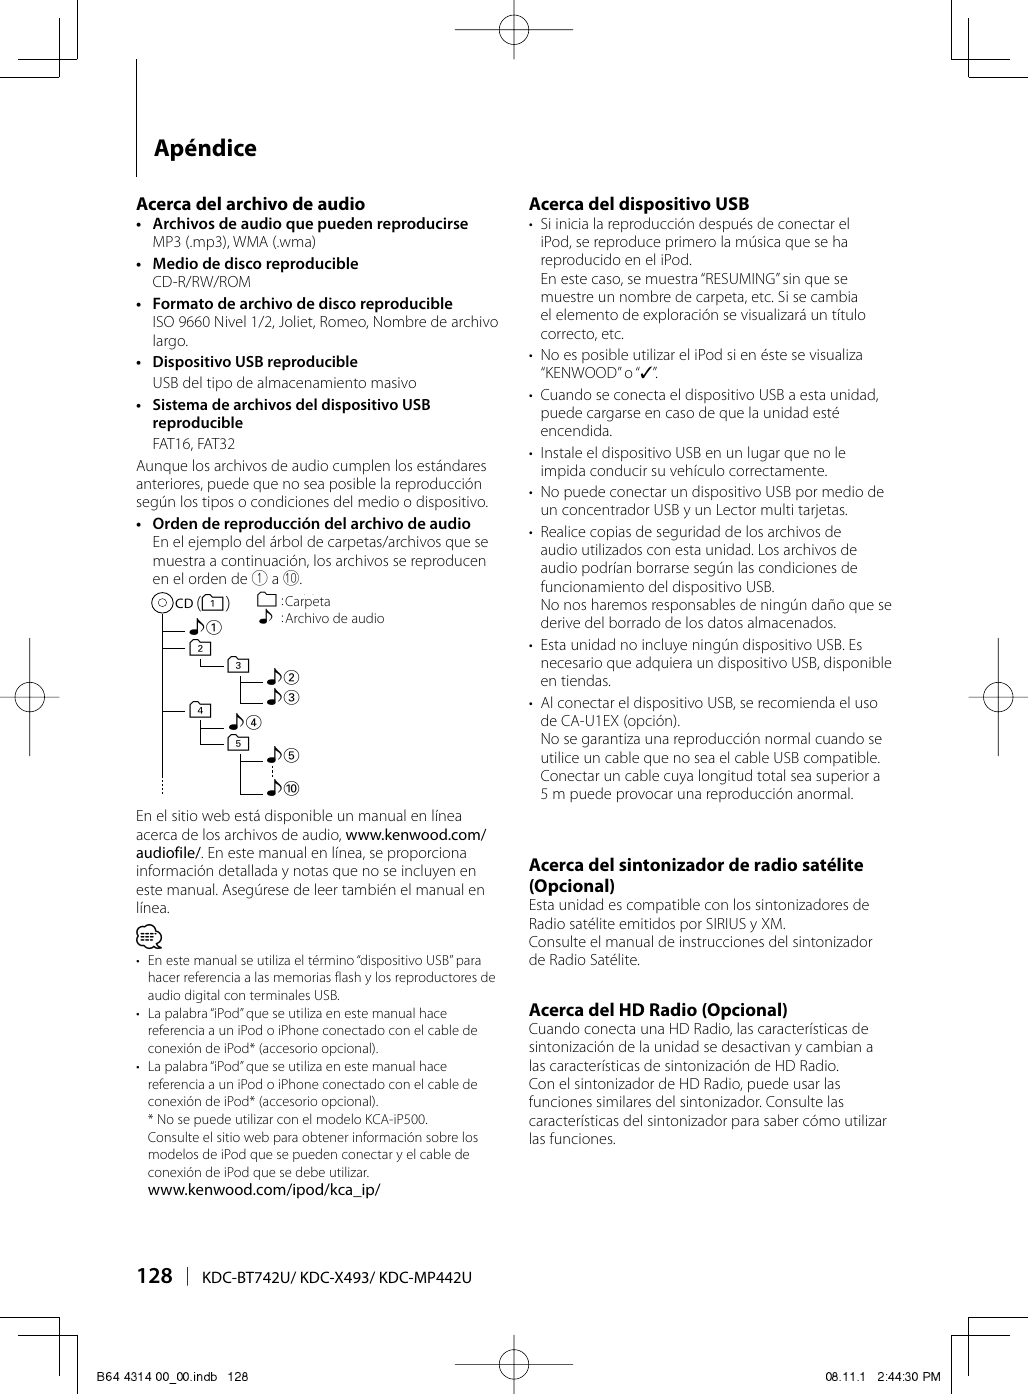 hight resolution of kenwoodexcelonkdcx493usersmanual263232 373101021 user guide page 128 png